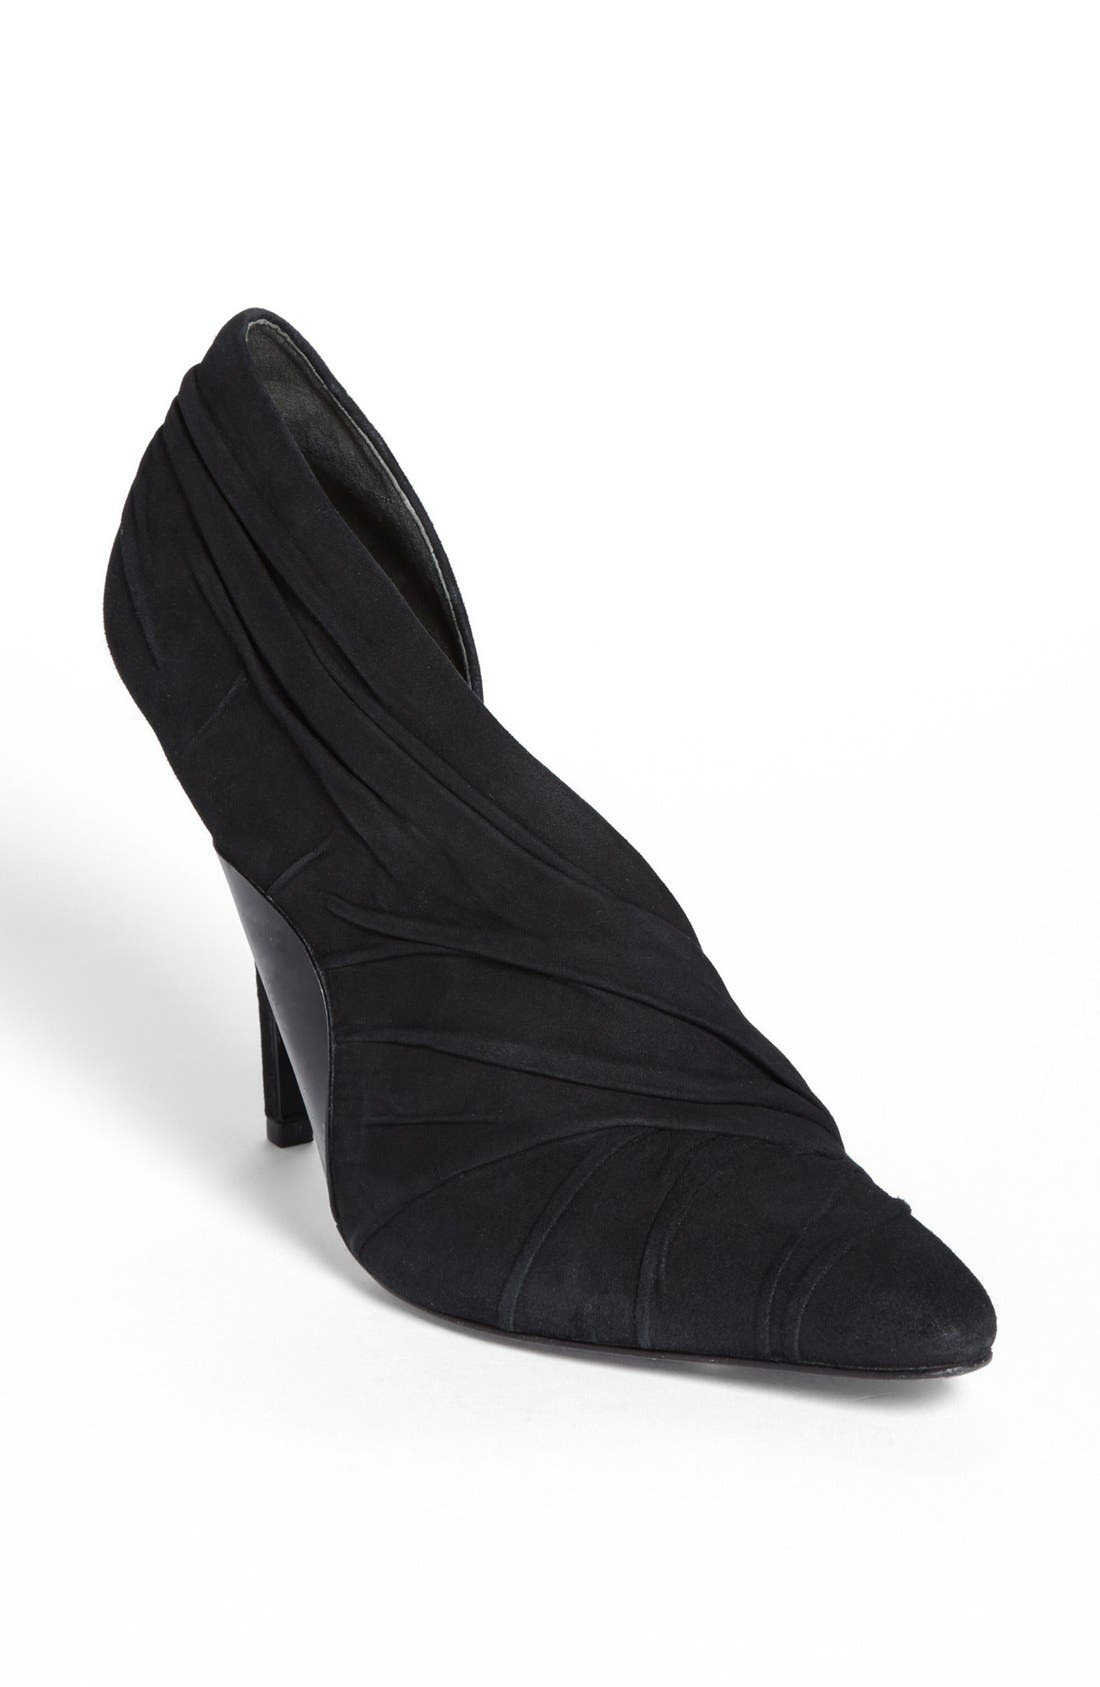 Alternate Image 1 Selected - Alexander Wang 'Marcelia' Pump